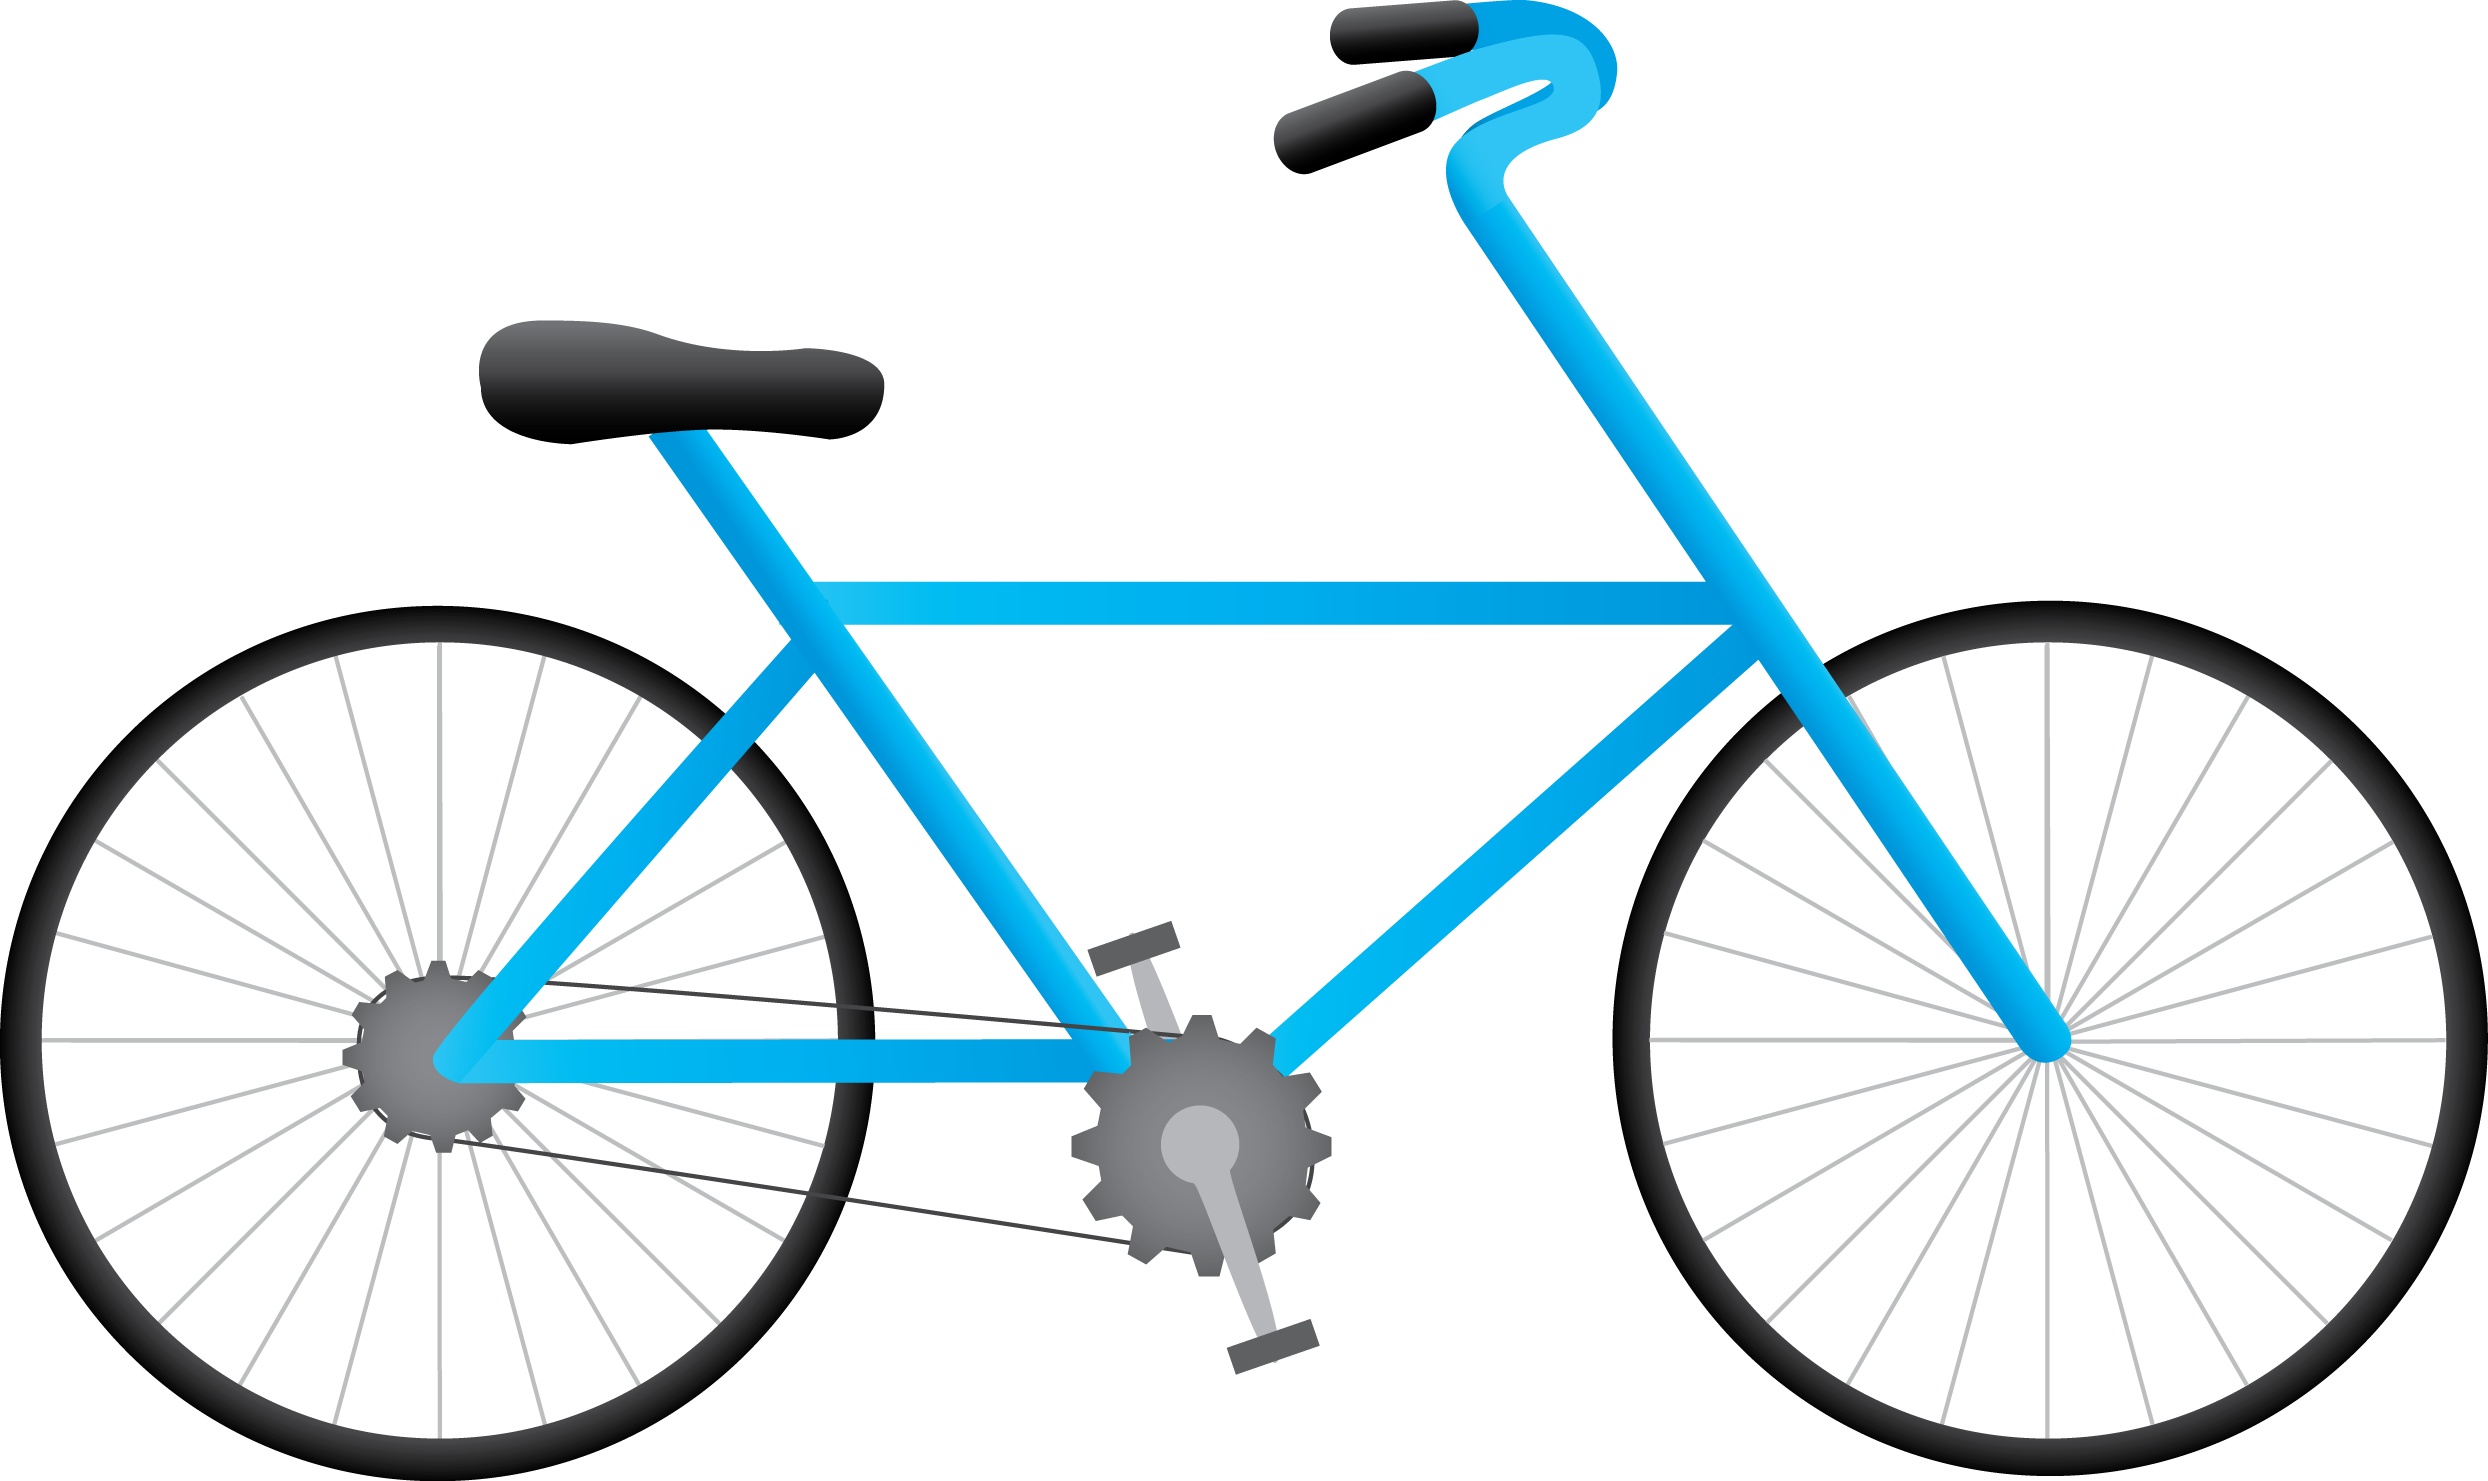 Blue Drawing Bicycle Png ClipArt image #45203